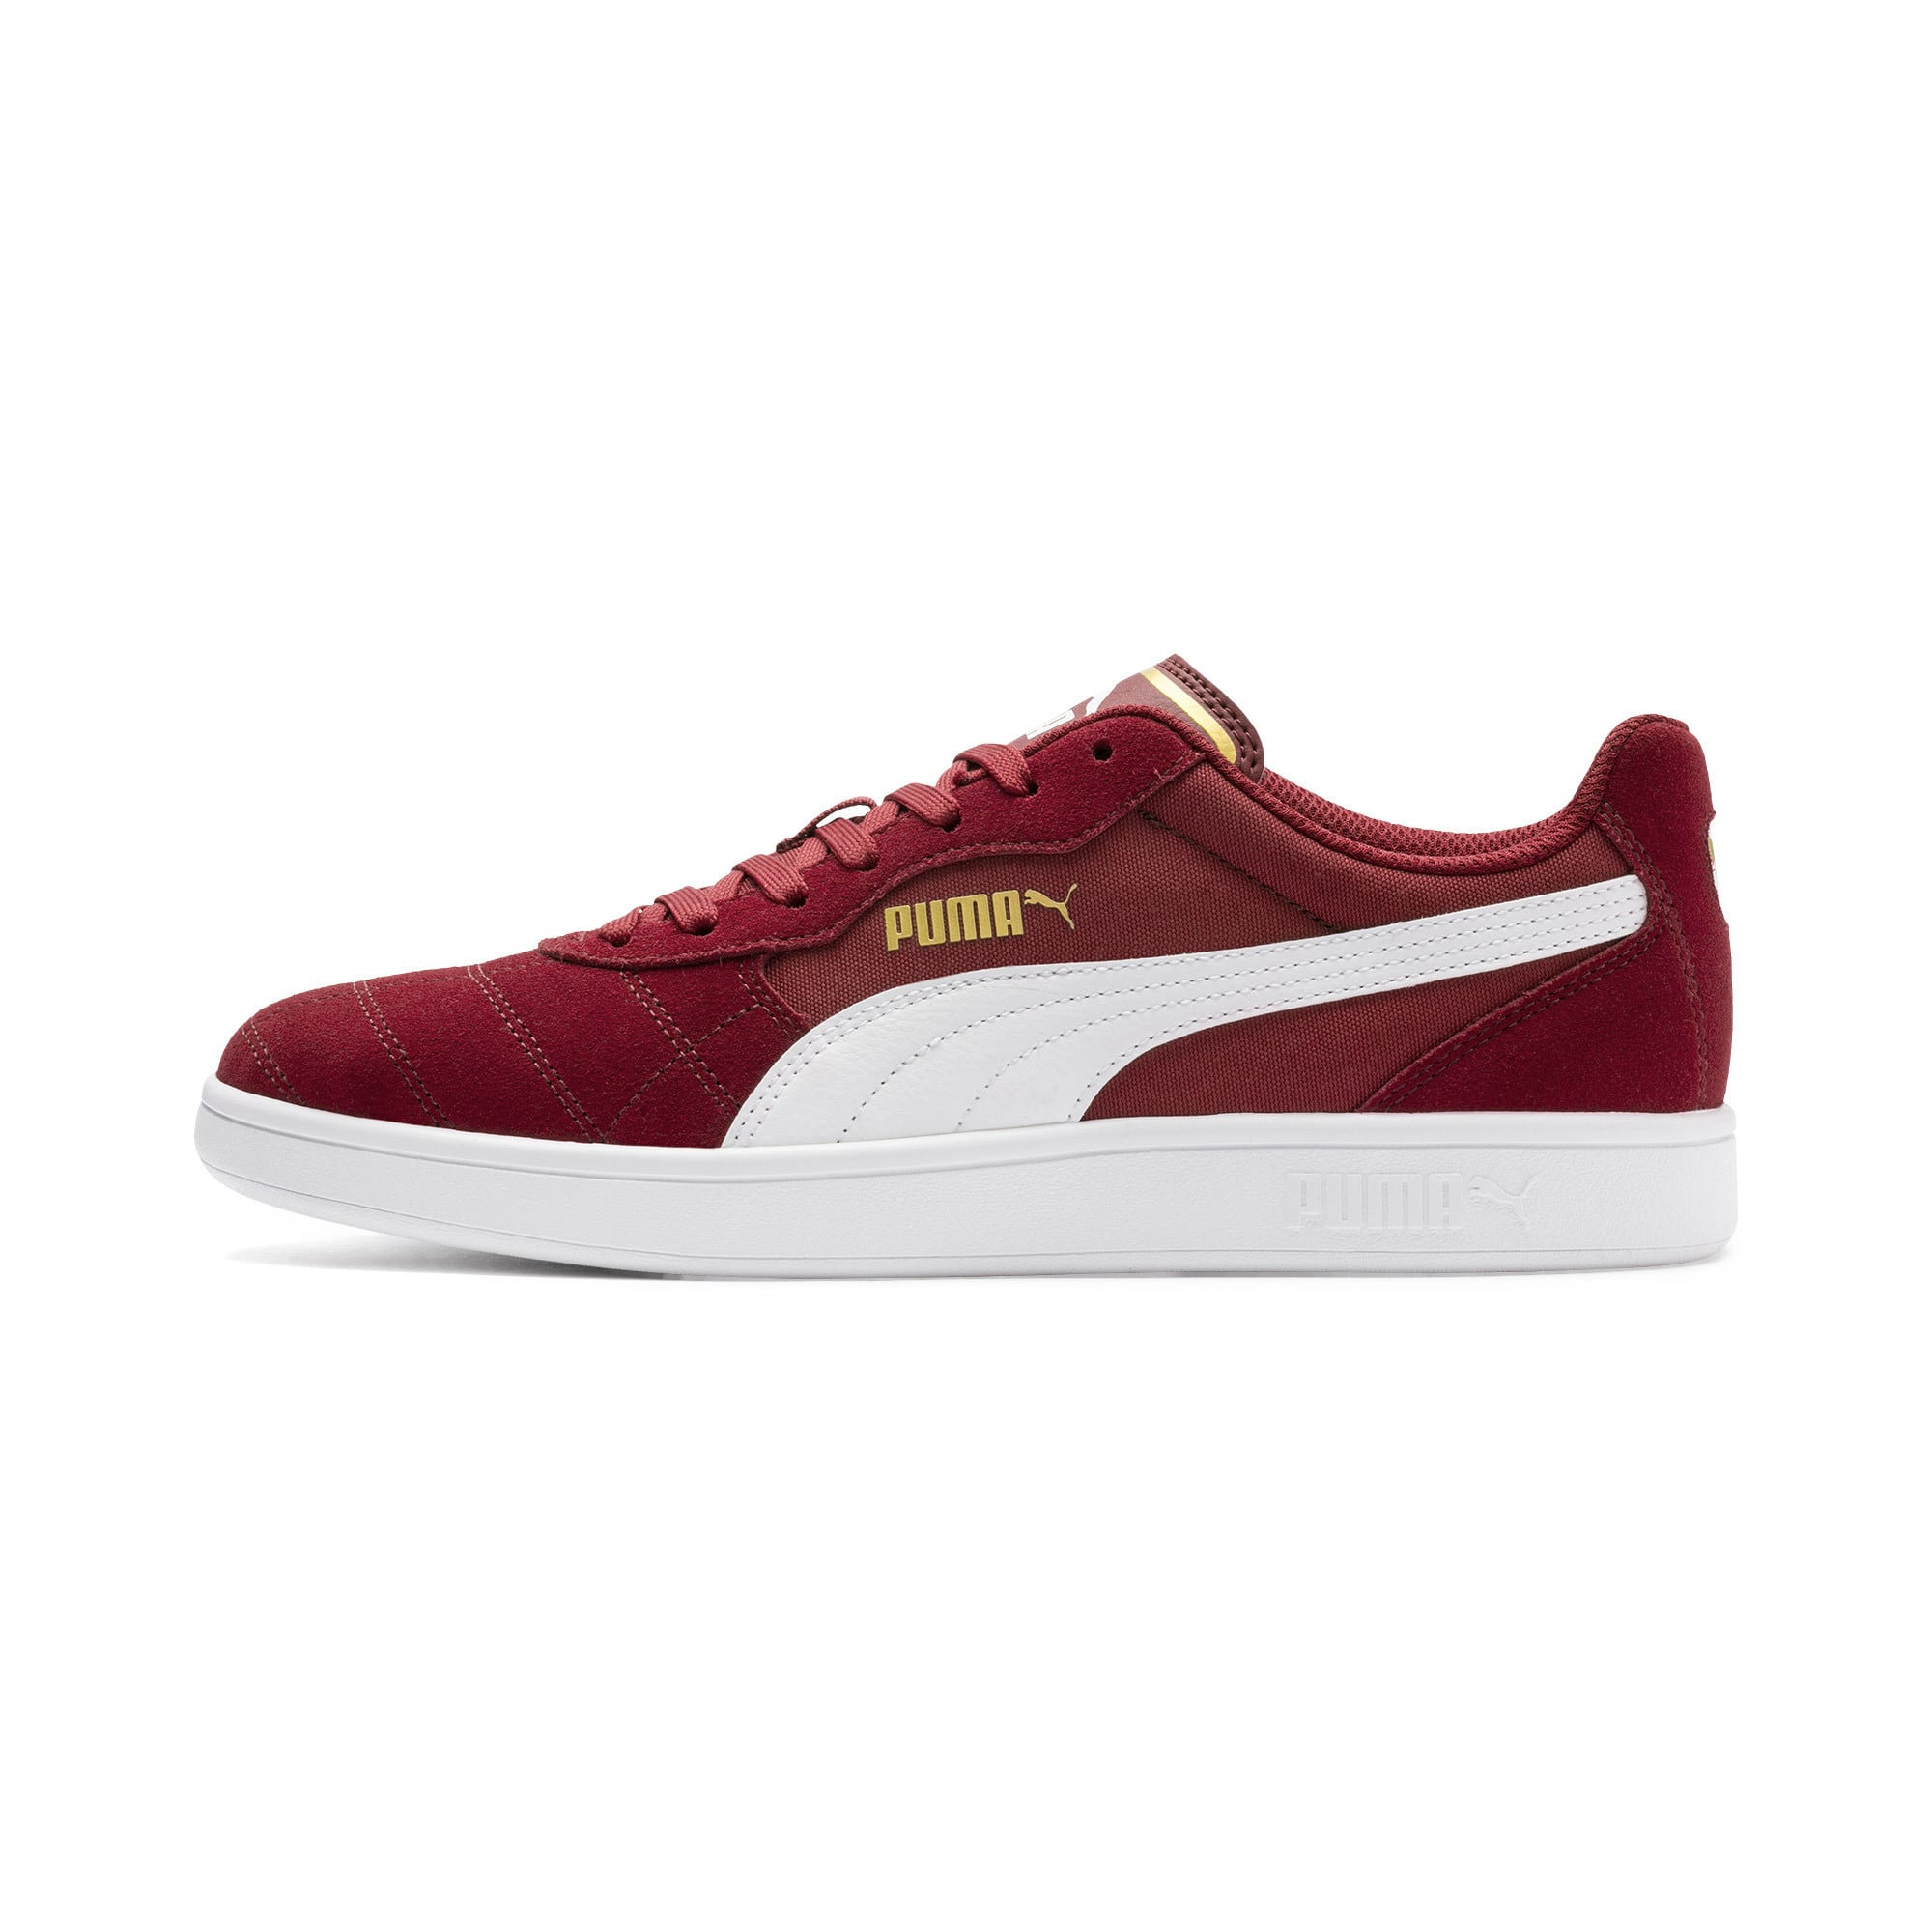 Thumbnail 1 of Zapatillas Astro Kick, Rhubarb-Puma White-Gold, medium